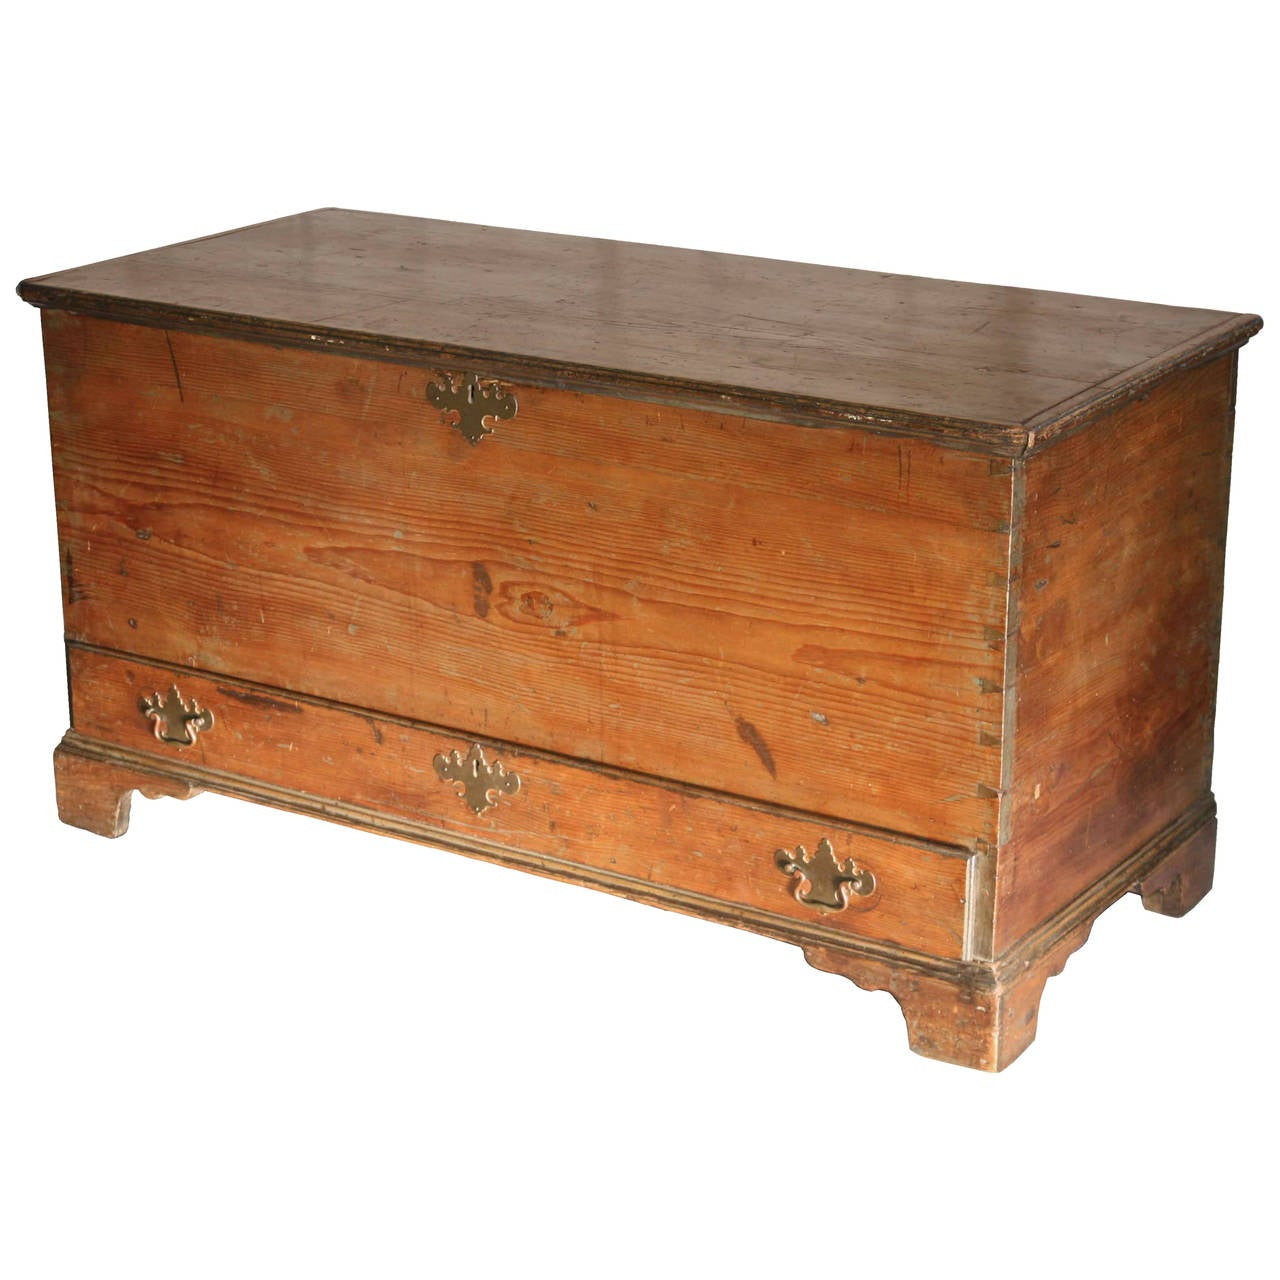 American Dovetailed Pine Blanket Chest with Drawer